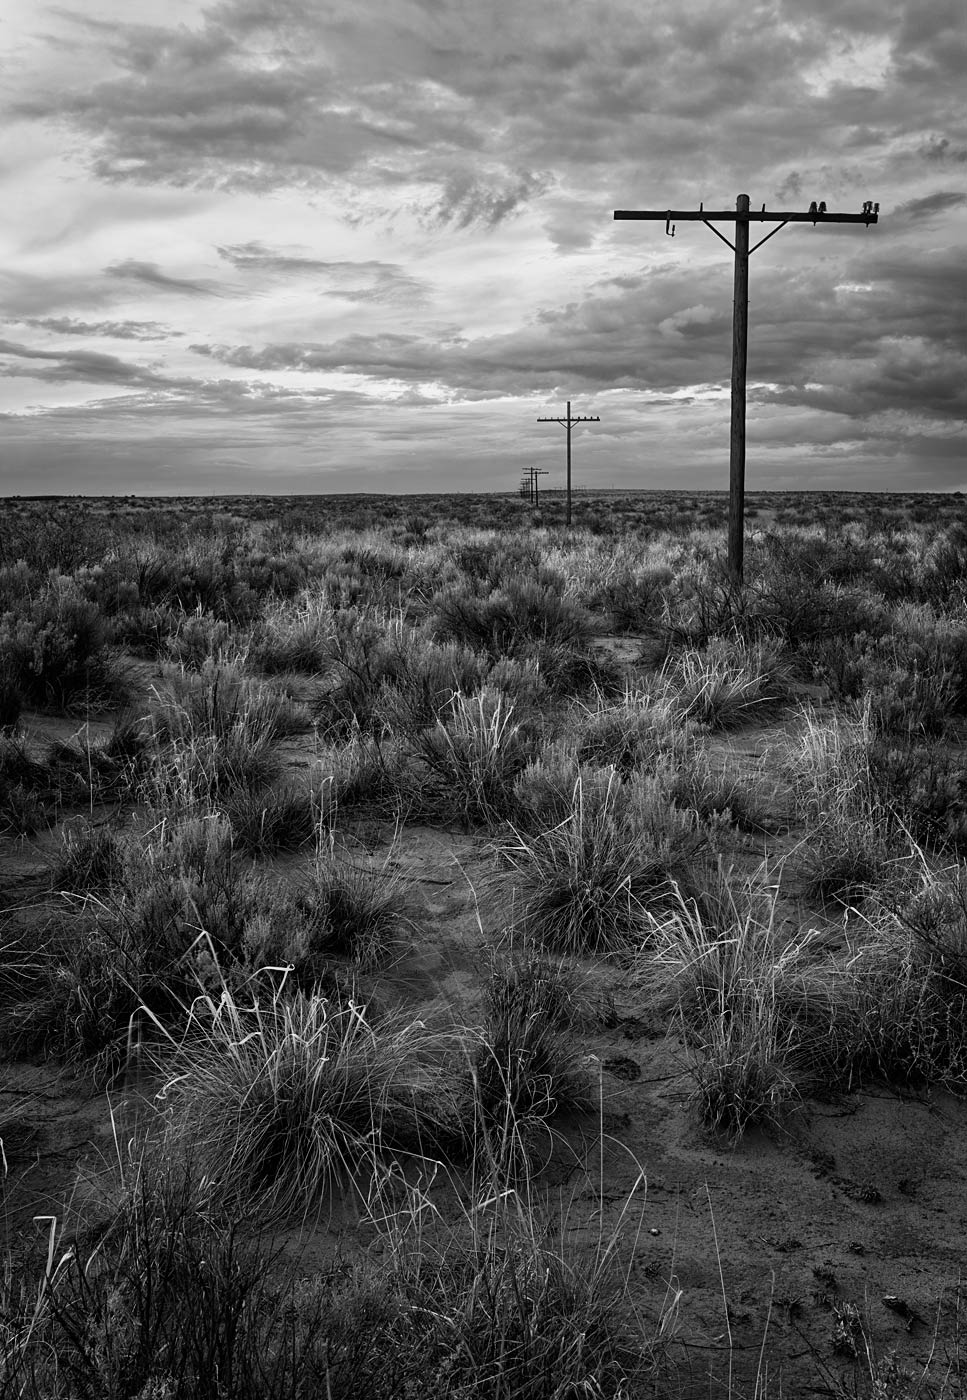 Petrified-Forest-National-Park-ABP-Route66_black-and-white.jpg